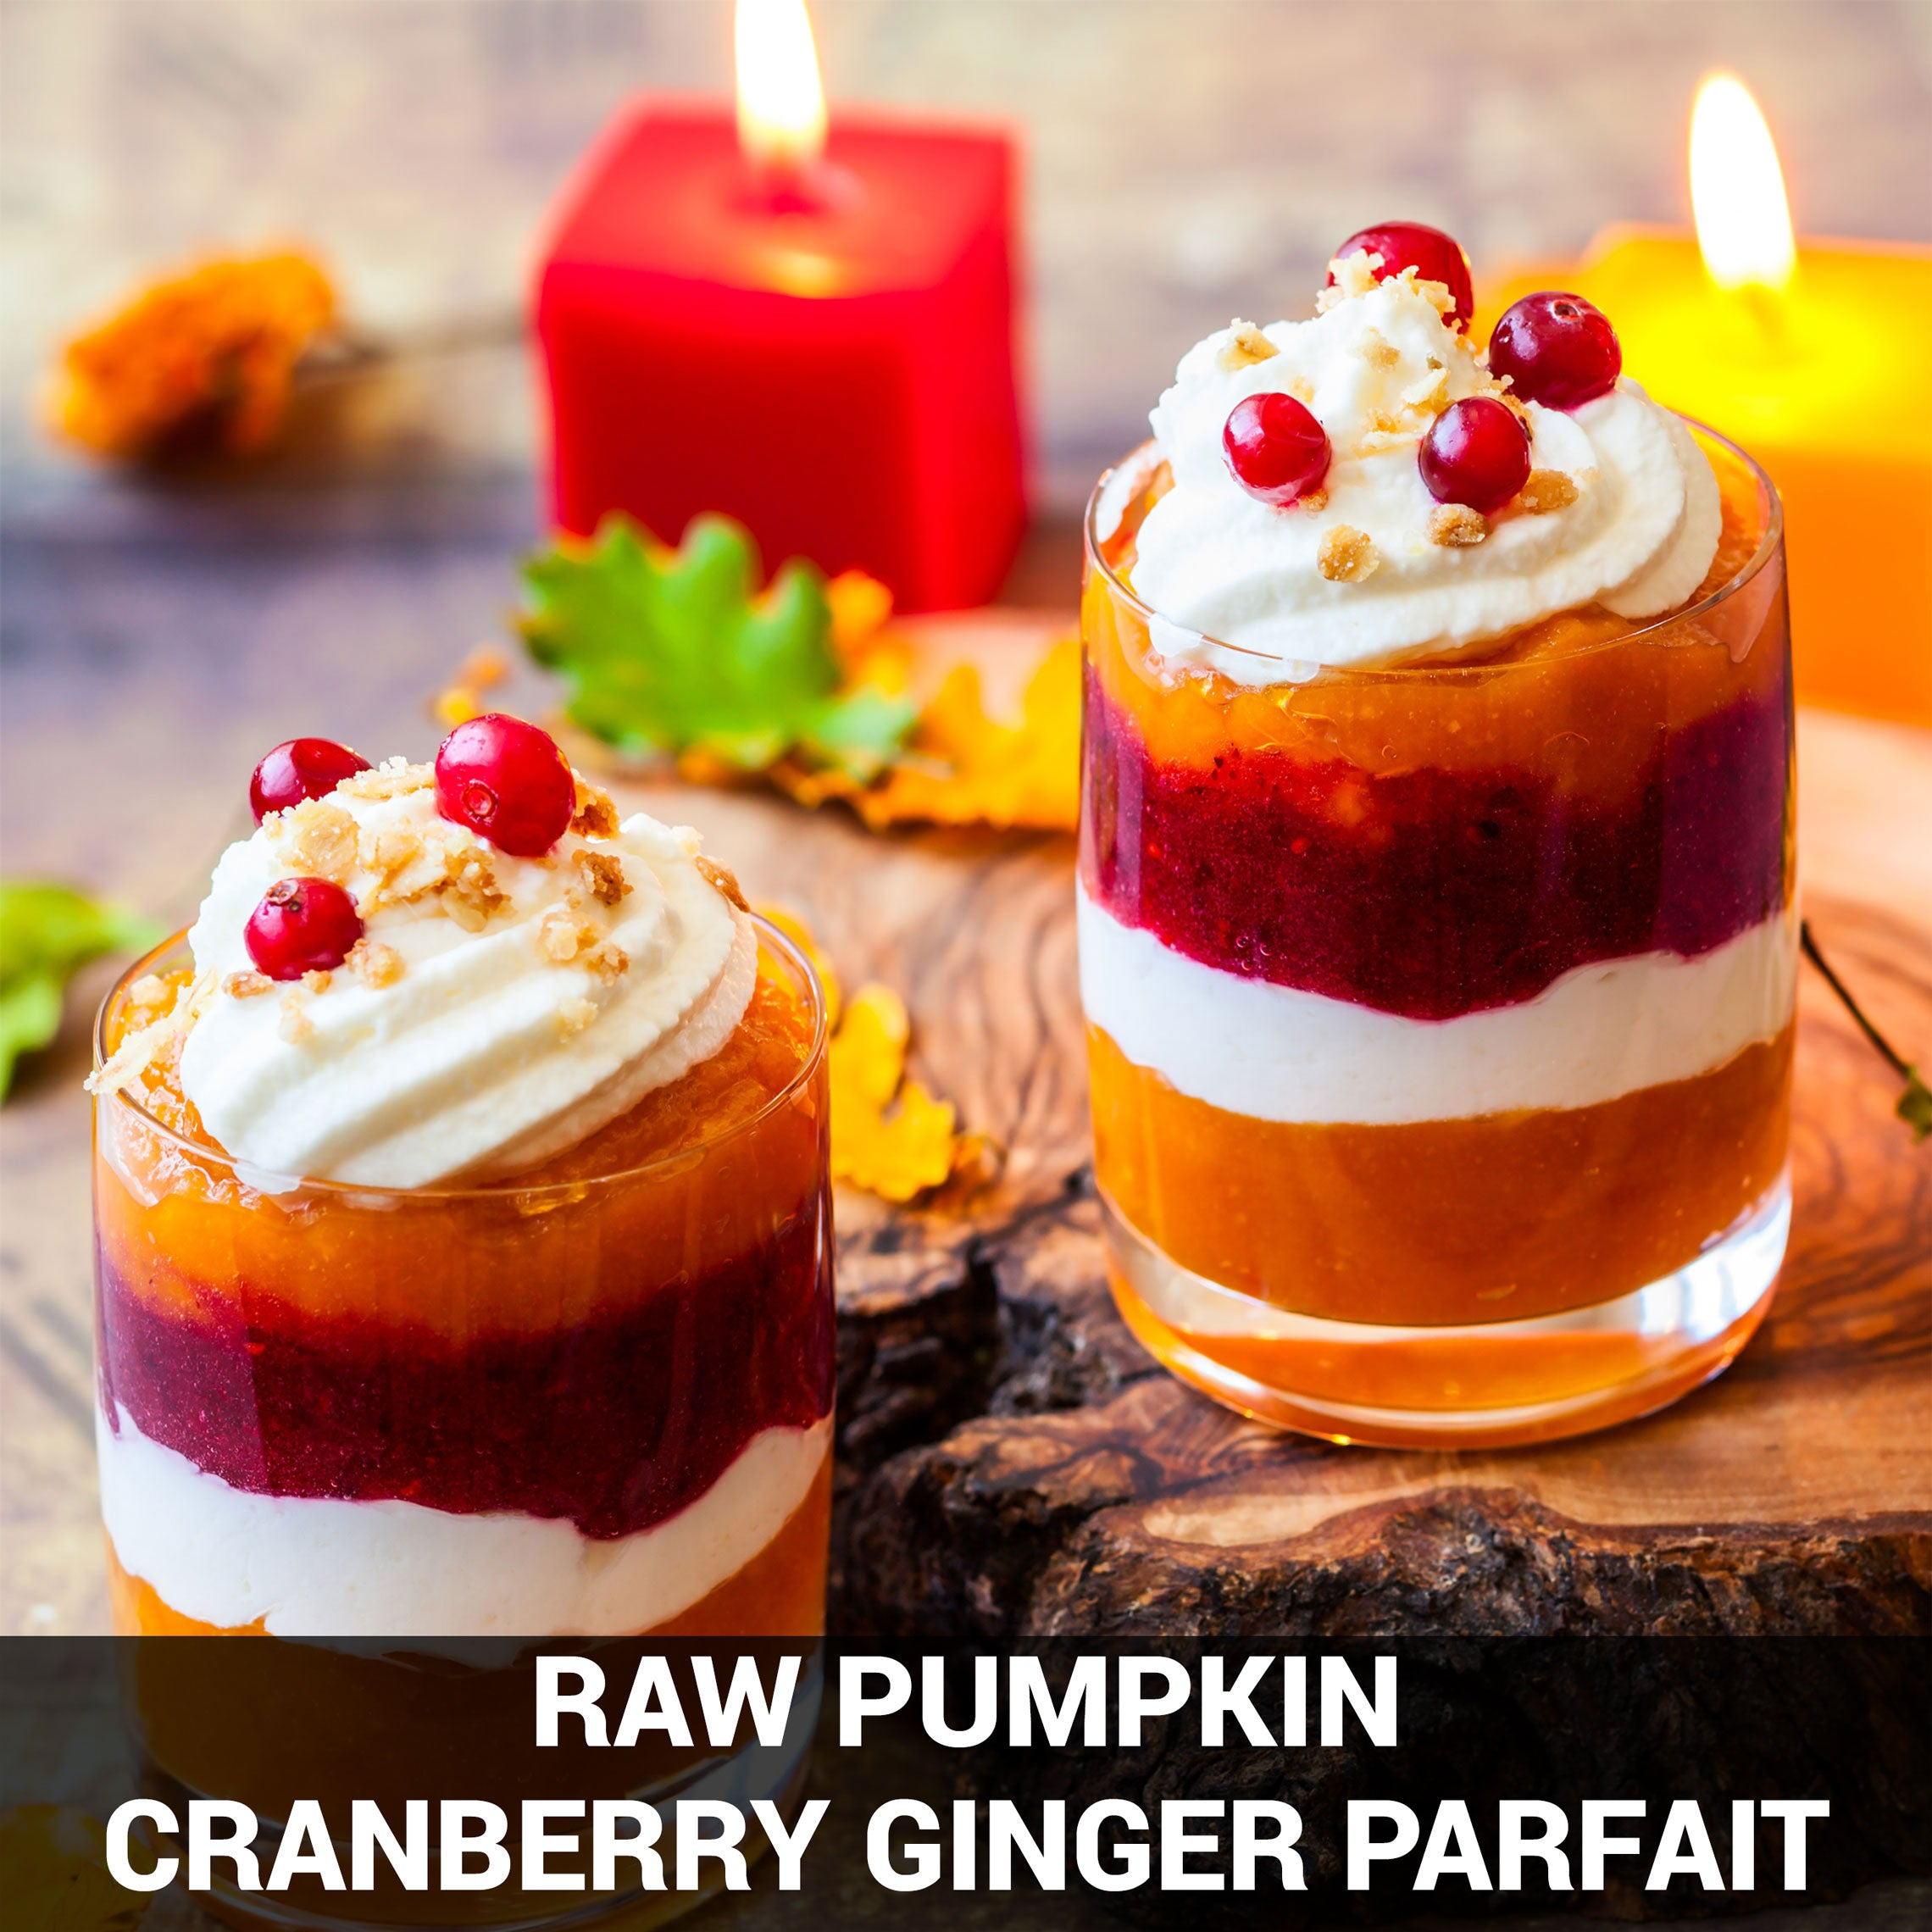 Raw Pumpkin Cranberry Ginger Parfaits Recipe - Foods Alive